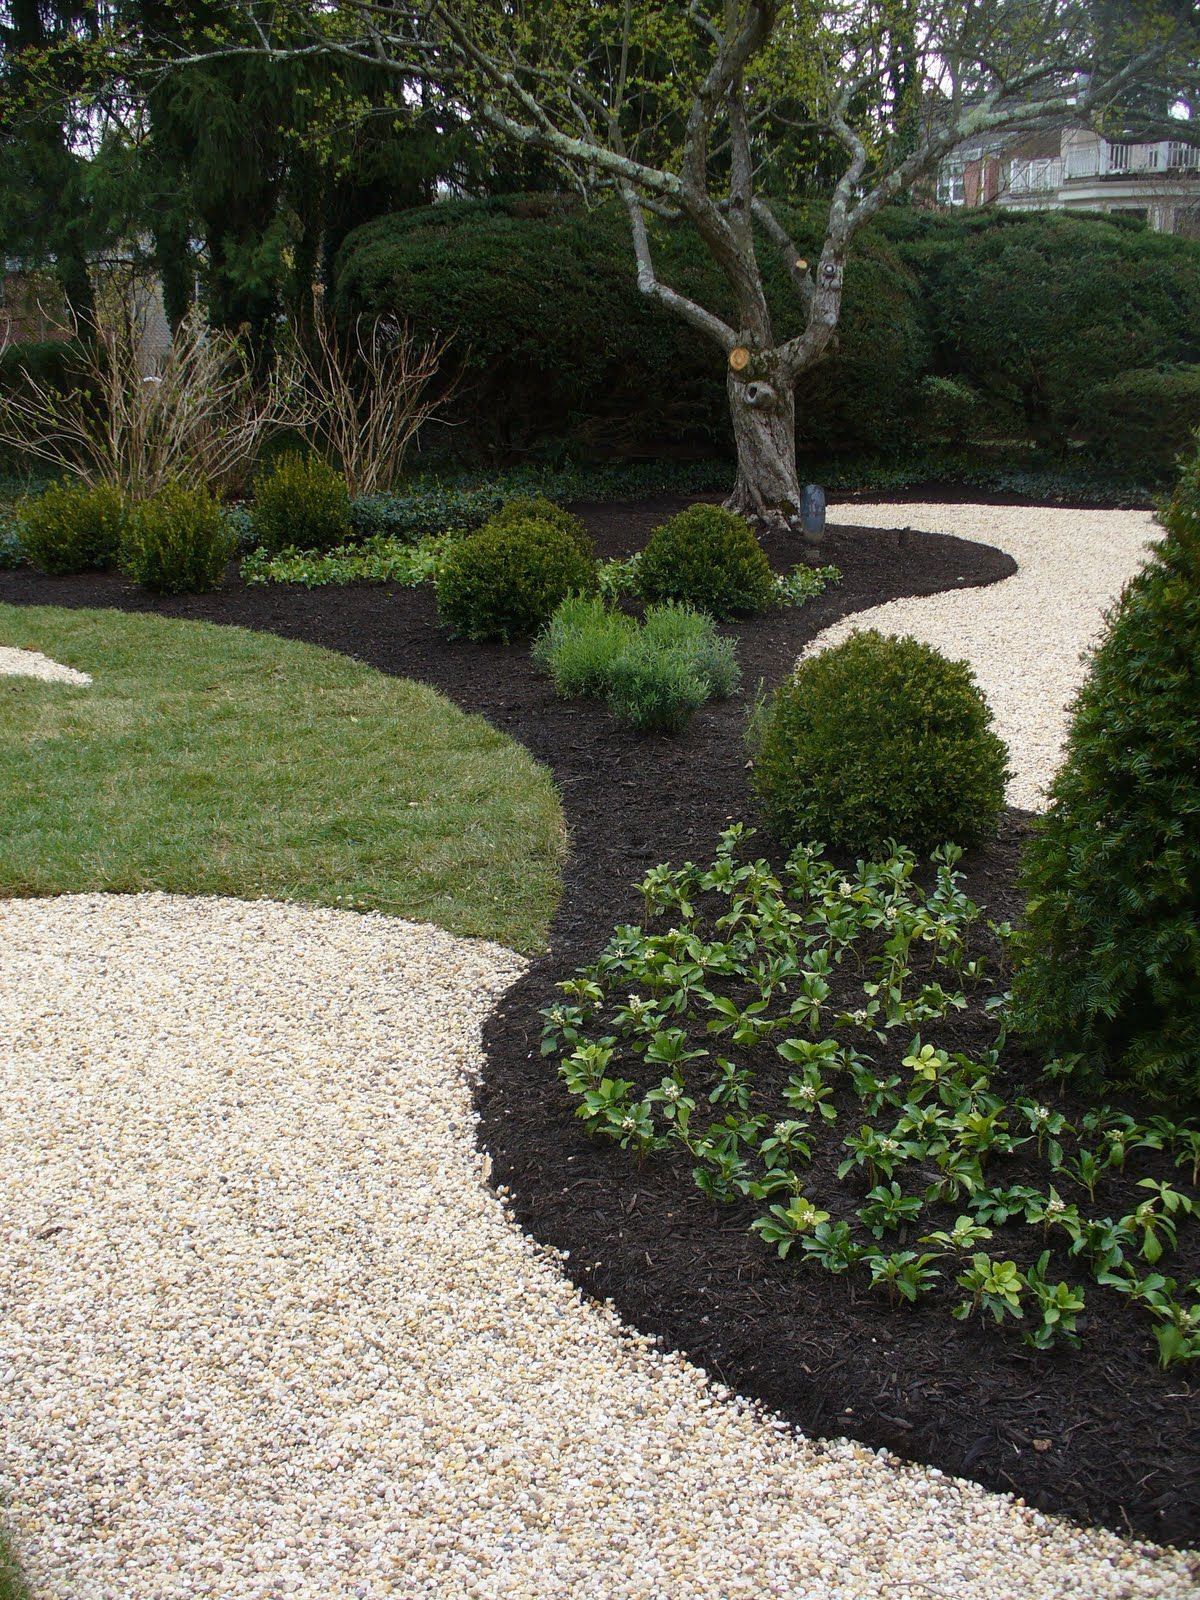 Black Bark Mulch A Pairing Of Black Mulch With Light Colored Crushed Stone Makes